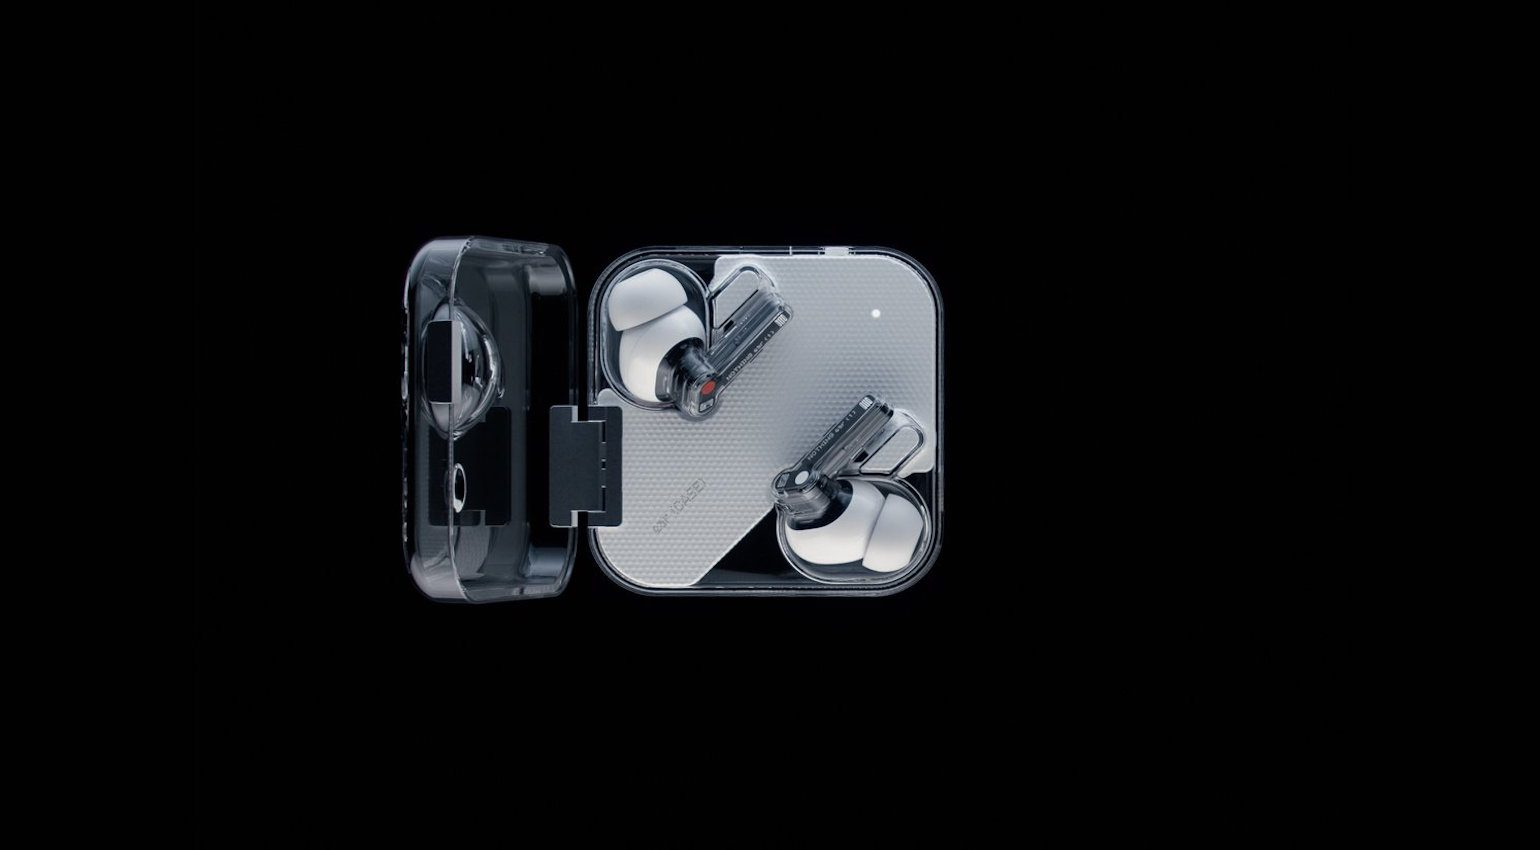 Ear (1) in their transparent charging case.